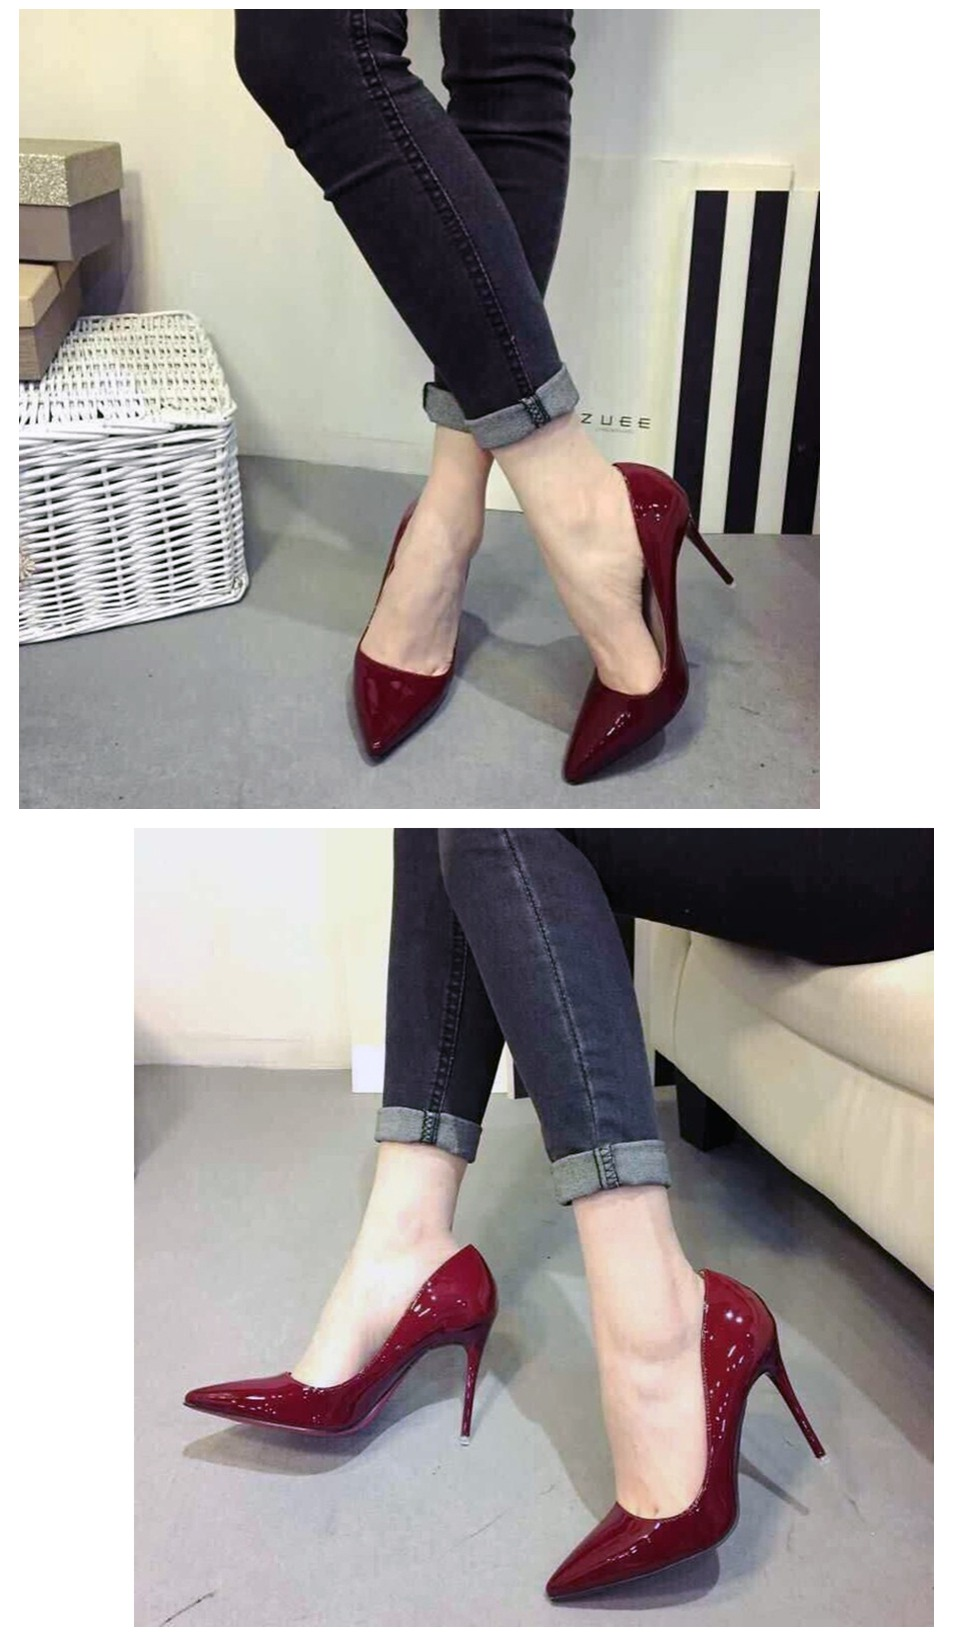 Ladies Shoes High Heels Patent Leather Classic Pumps Sexy Dress Prom Wedding Women PU Pointed Toe Beige Red Bottoms Shoes 10